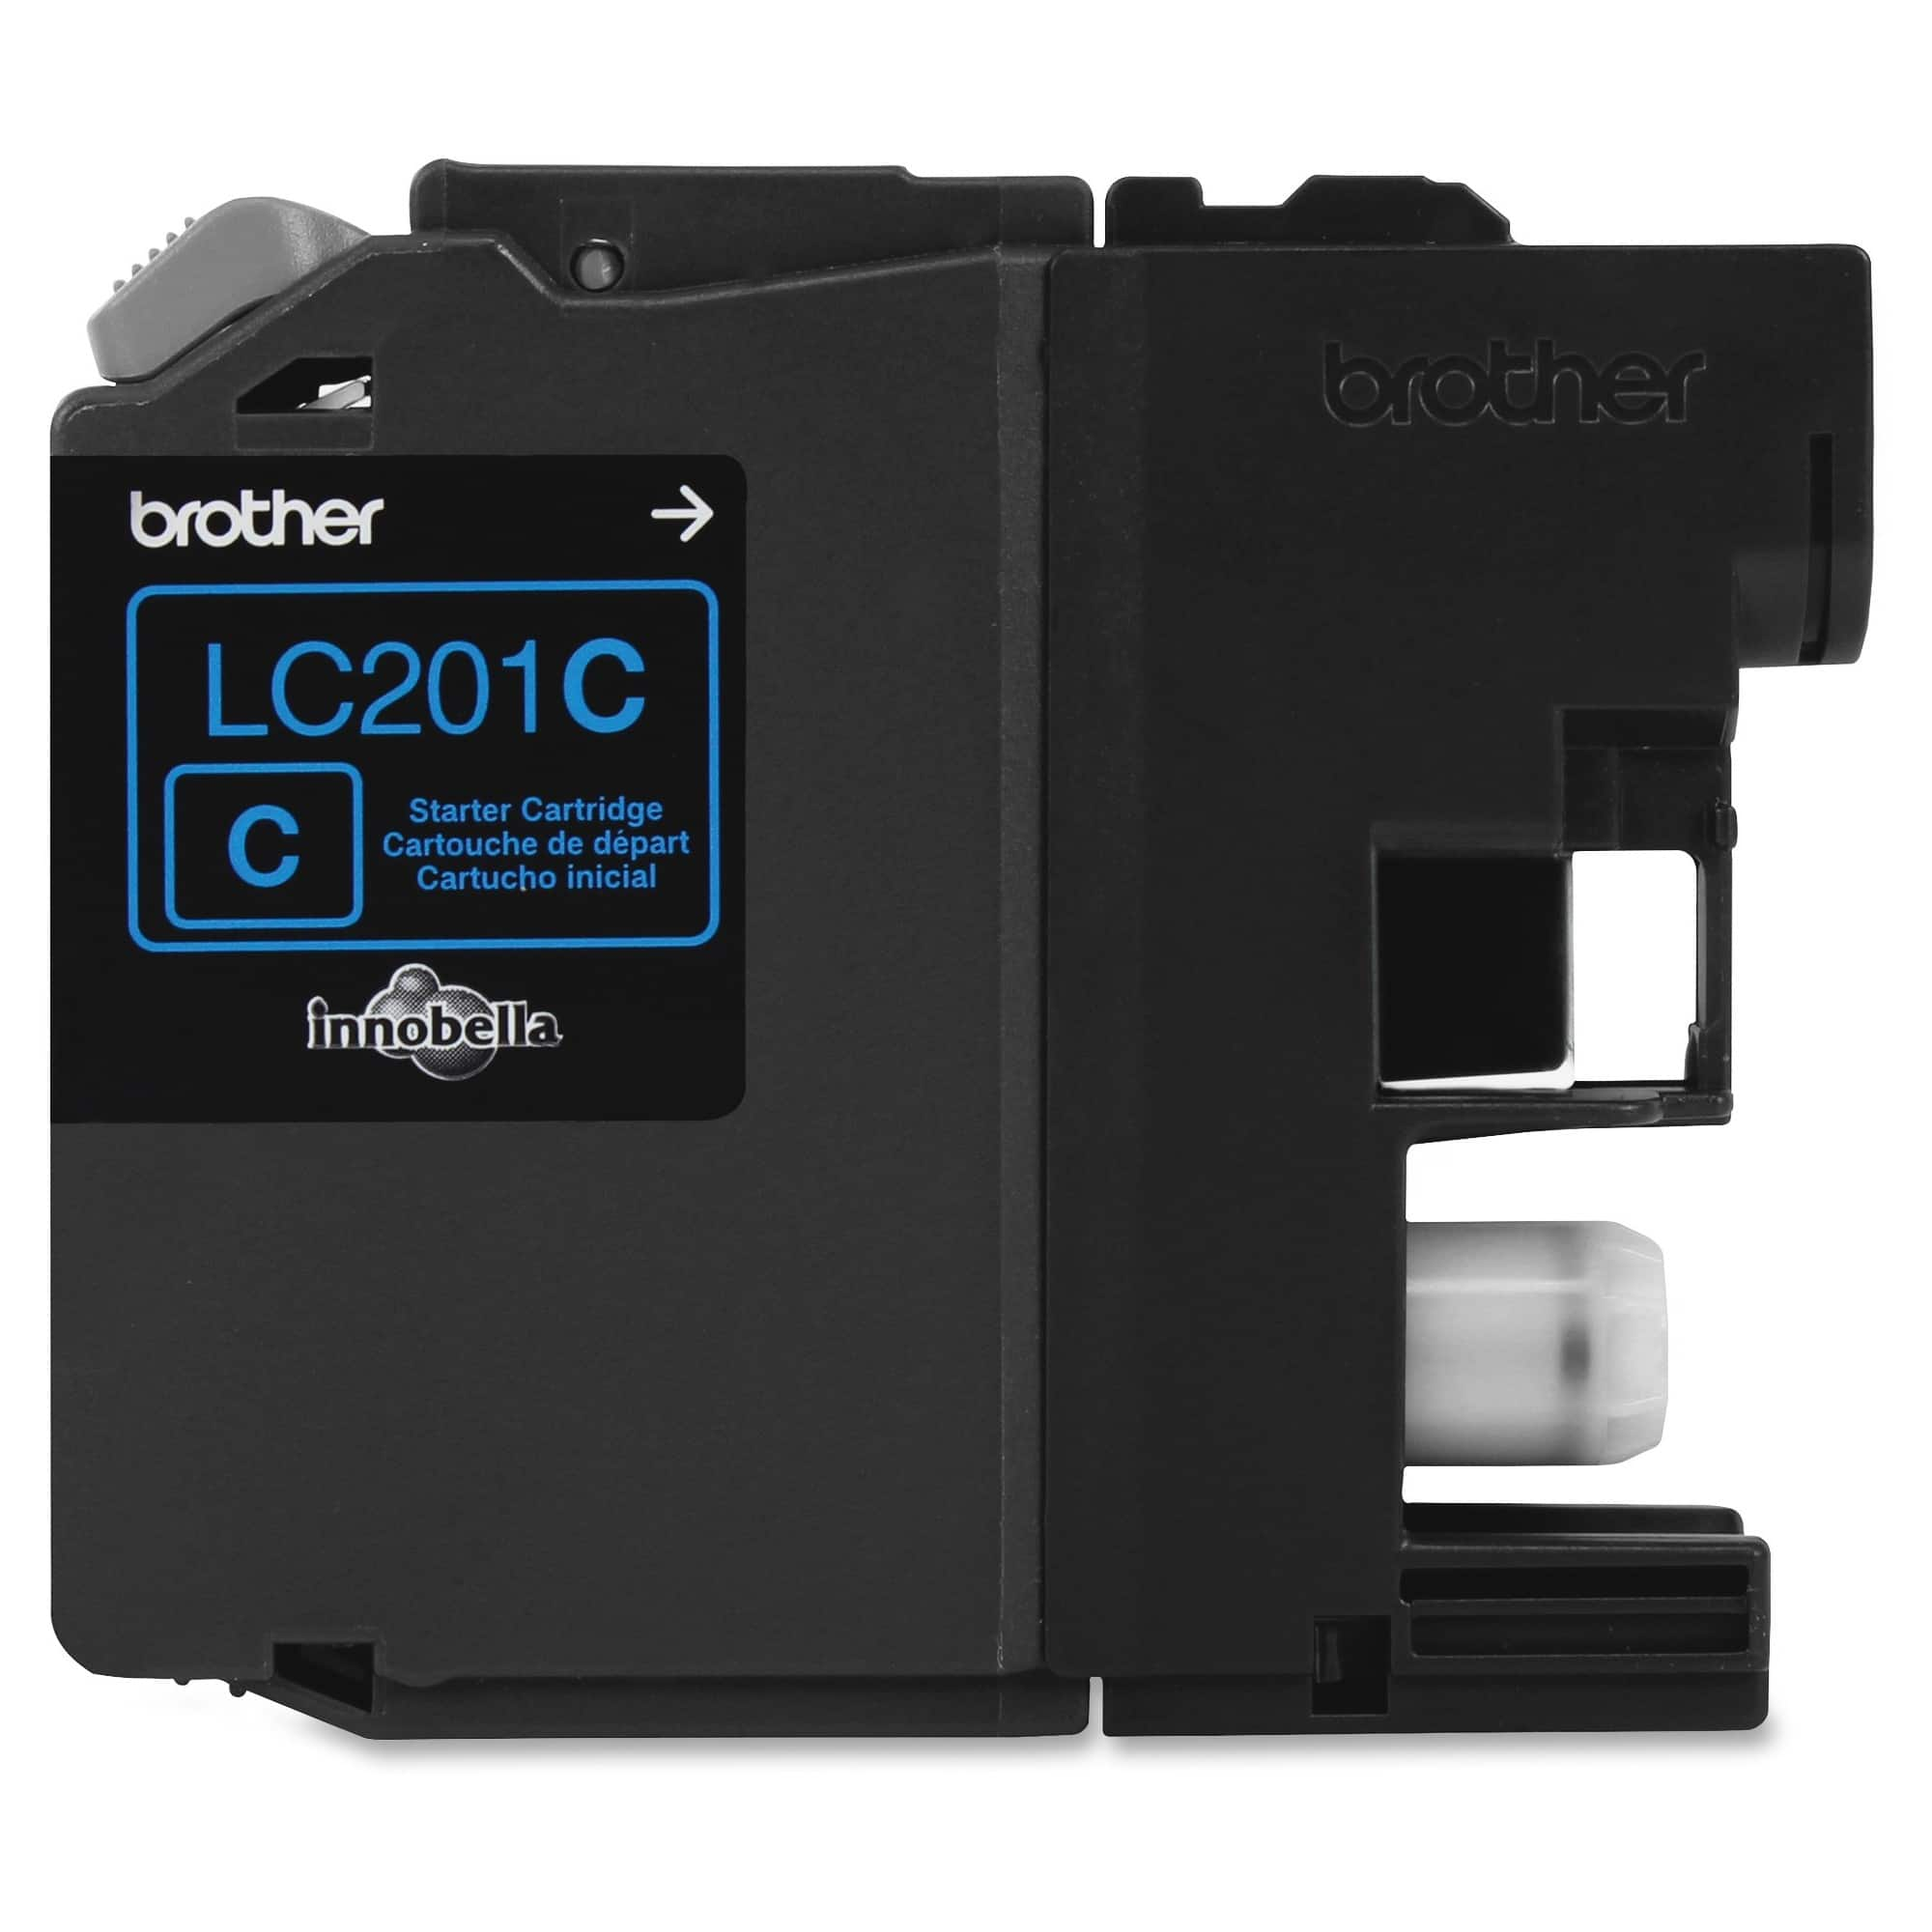 BROTHER INTERNATIONAL CORPORAT Brother Genuine Innobella LC201C Cyan Ink Cartridge